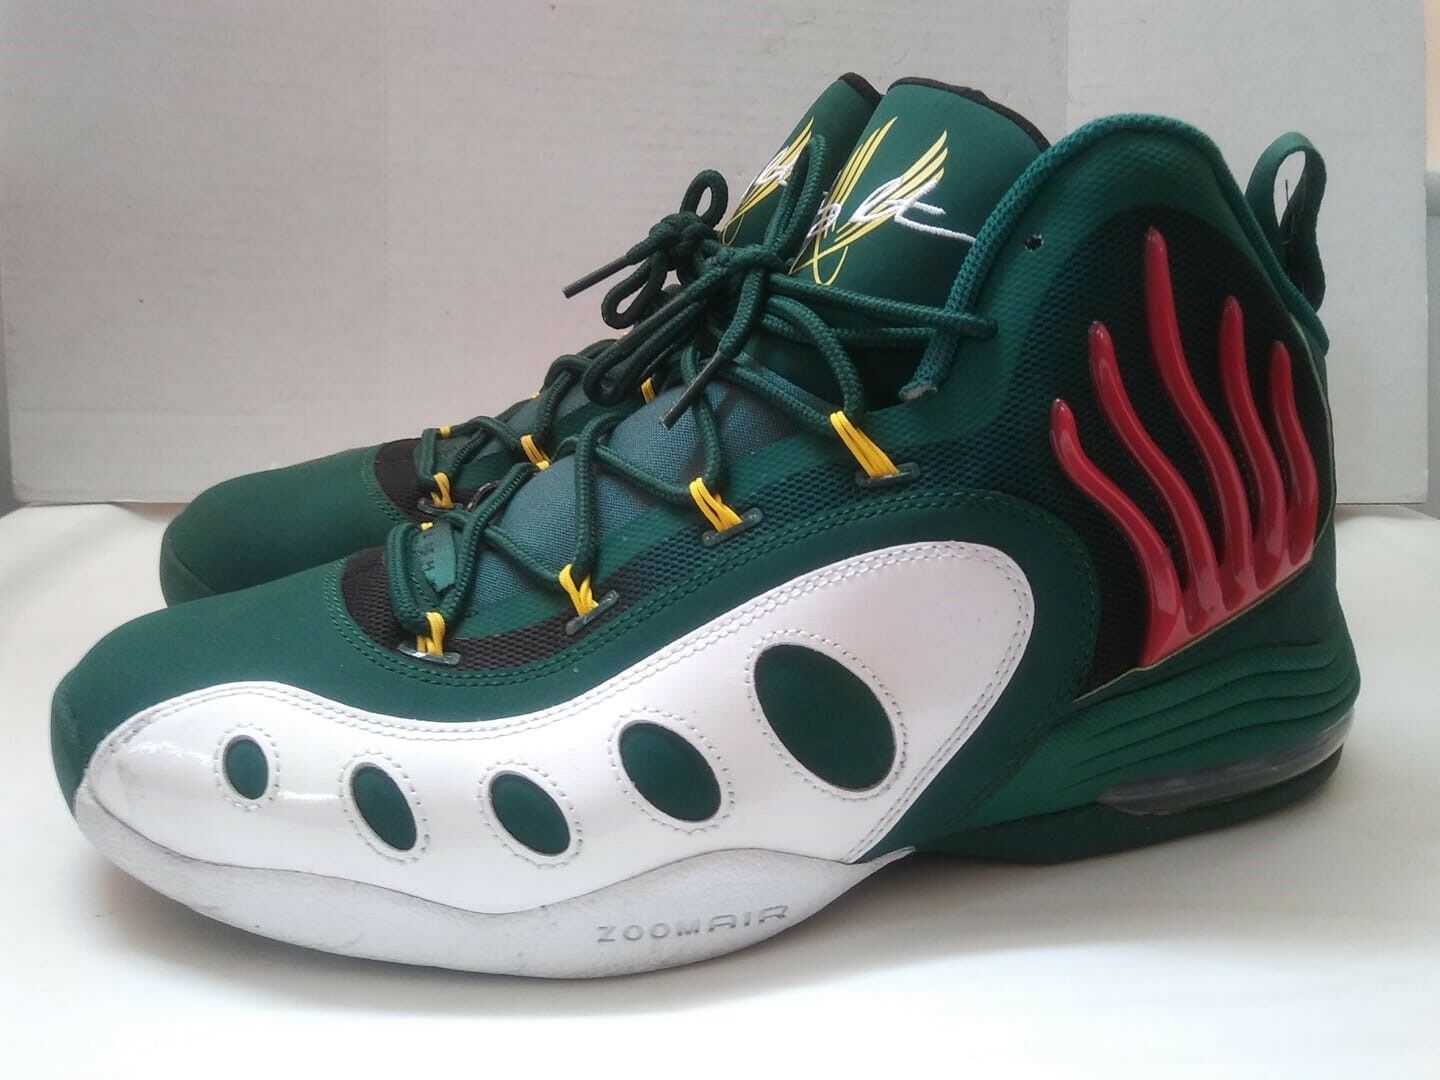 Nike Air Sonic Flight Gary Payton Flames Green Shoes Zoomair Sz 11.5 Great Cond